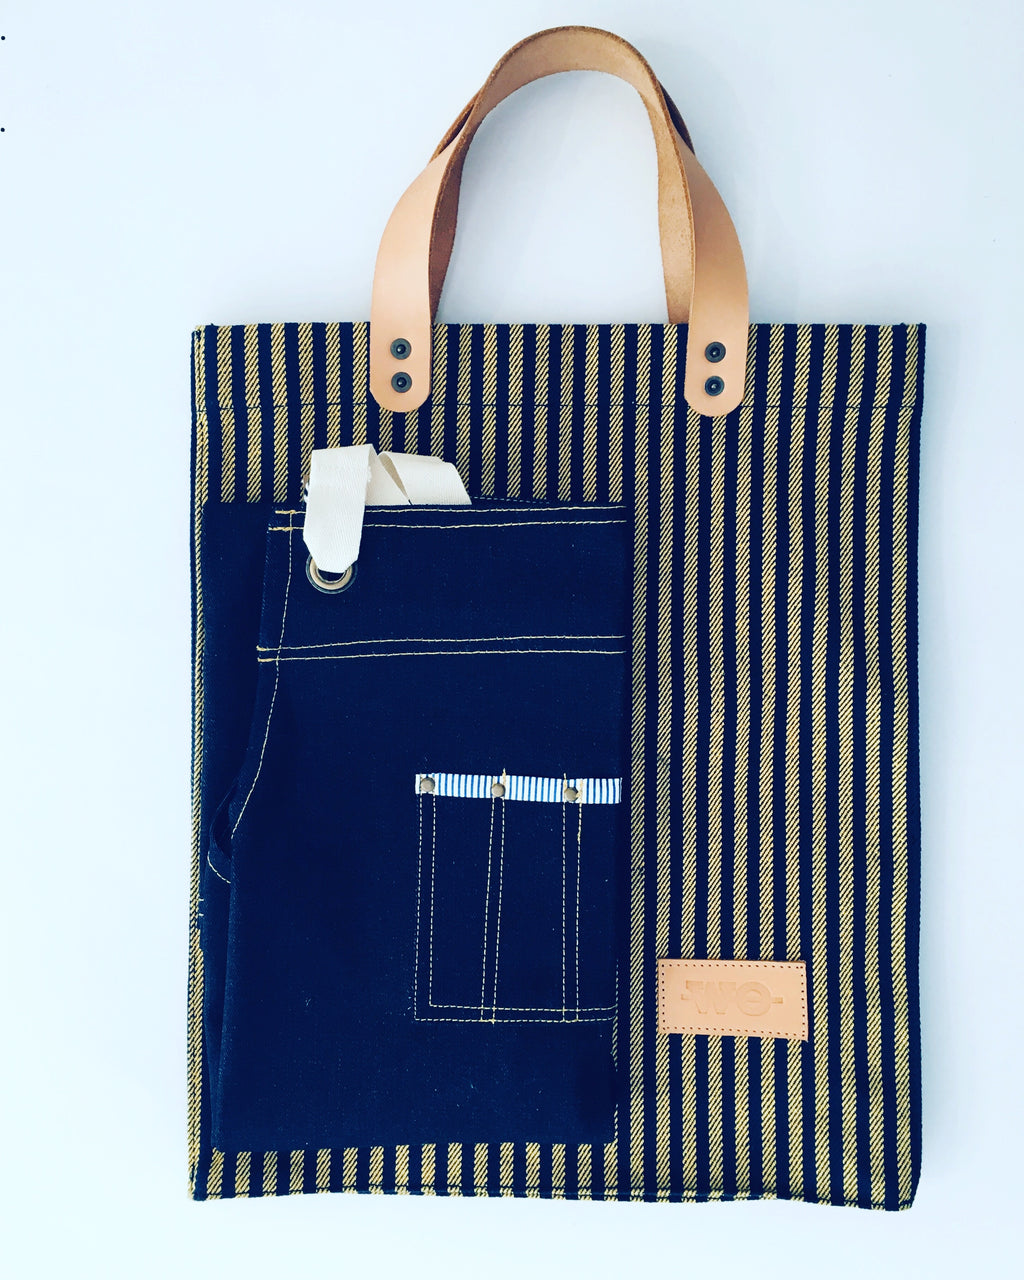 Striped Yellow and Navy Tote with Leather Handles